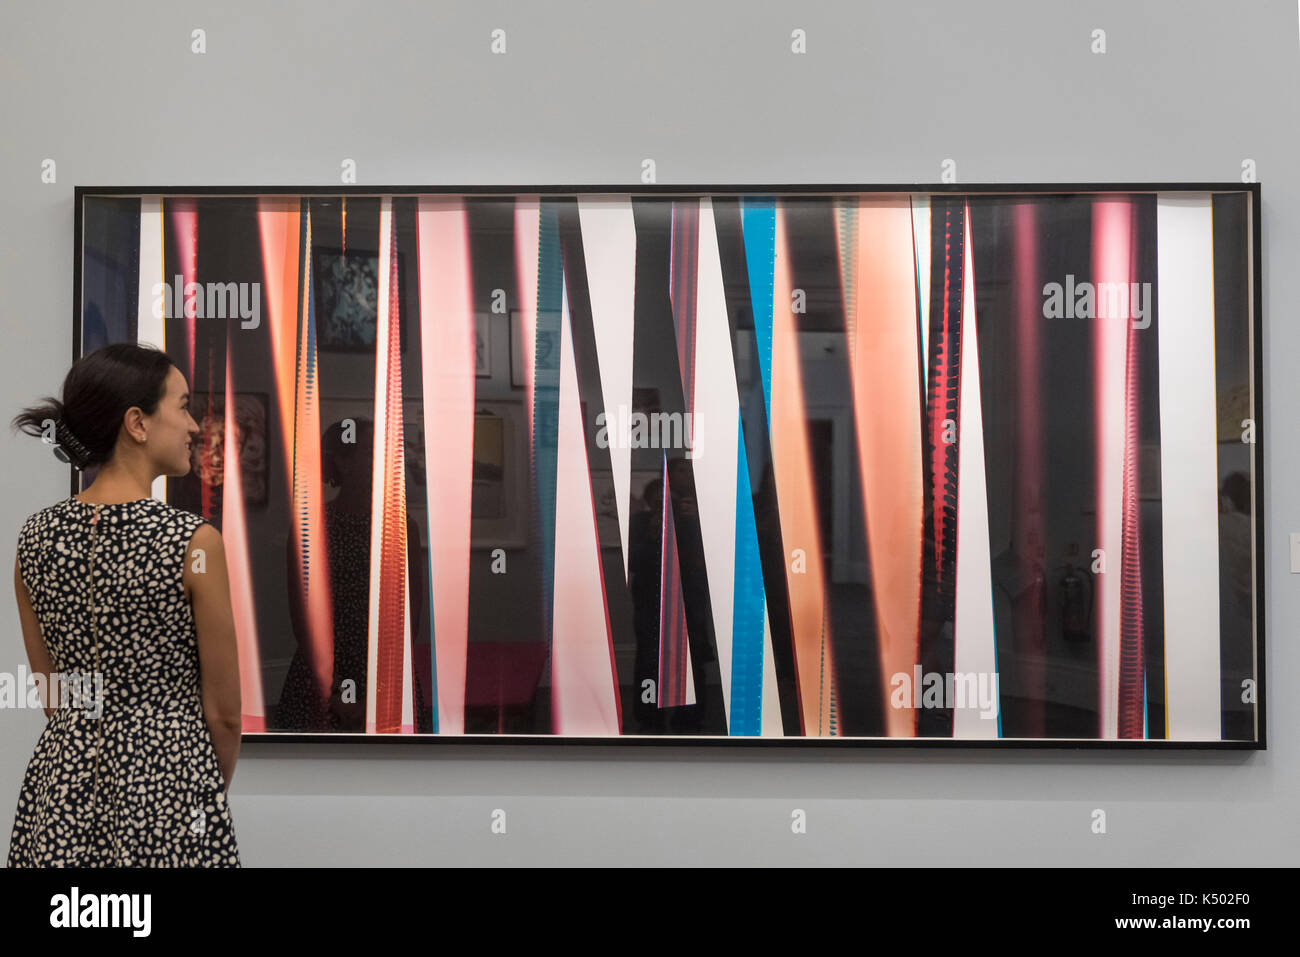 London, UK.  8 September 2017. A staff member views 'RA4 Contact Print', 2013, by Walead Beshty (Est. GBP25-35k), at a preview of 'Shake It Up', a collection of contemporary artworks from the personal collection of celebrity photographer Mario Testino. Proceeds from the upcoming auction of the collection at Sotheby's in London will benefit Museo Mate in Lima, Peru. - Stock Image